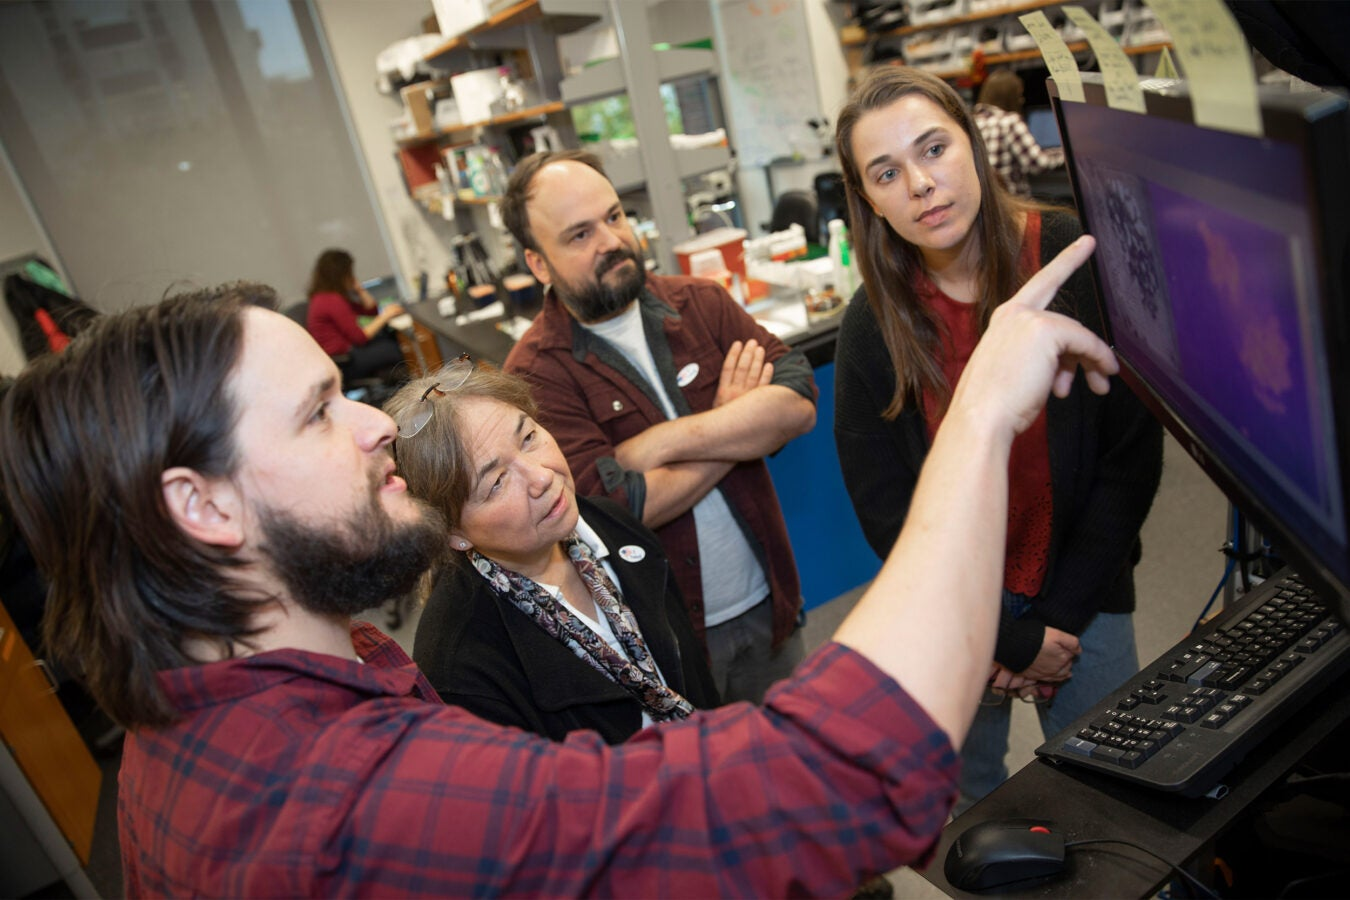 James Crall (from left) is the lead author of a new study that shows a particular class of pesticides can have dramatic effects on bees inside Northwest Labs. He is seen with co-authors, Naomi Pierce, Ben de Bivort, Andrea Brown '19.